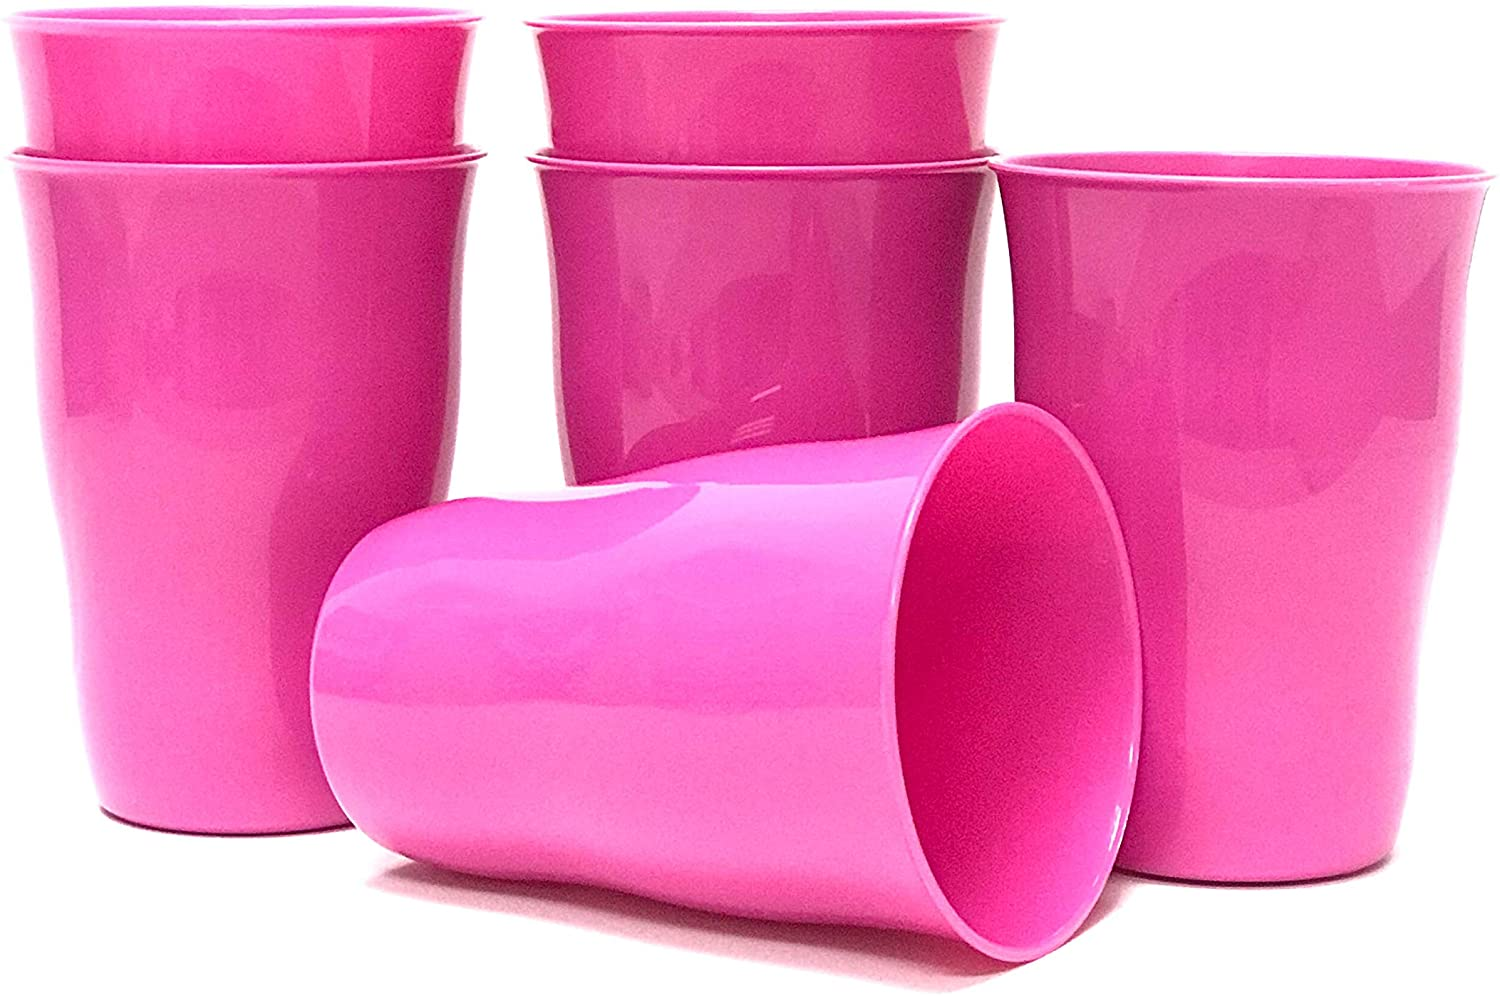 Mintra Home Reusable Plastic Cups 11 Ounce Tumbler for Party, Kids, Home, Kitchen, Events, Drinks and Drinking Water, Juice or Soda - BPA Free Tumblers, Many Colors, Dishwasher Safe -Pack of 6(Purple)